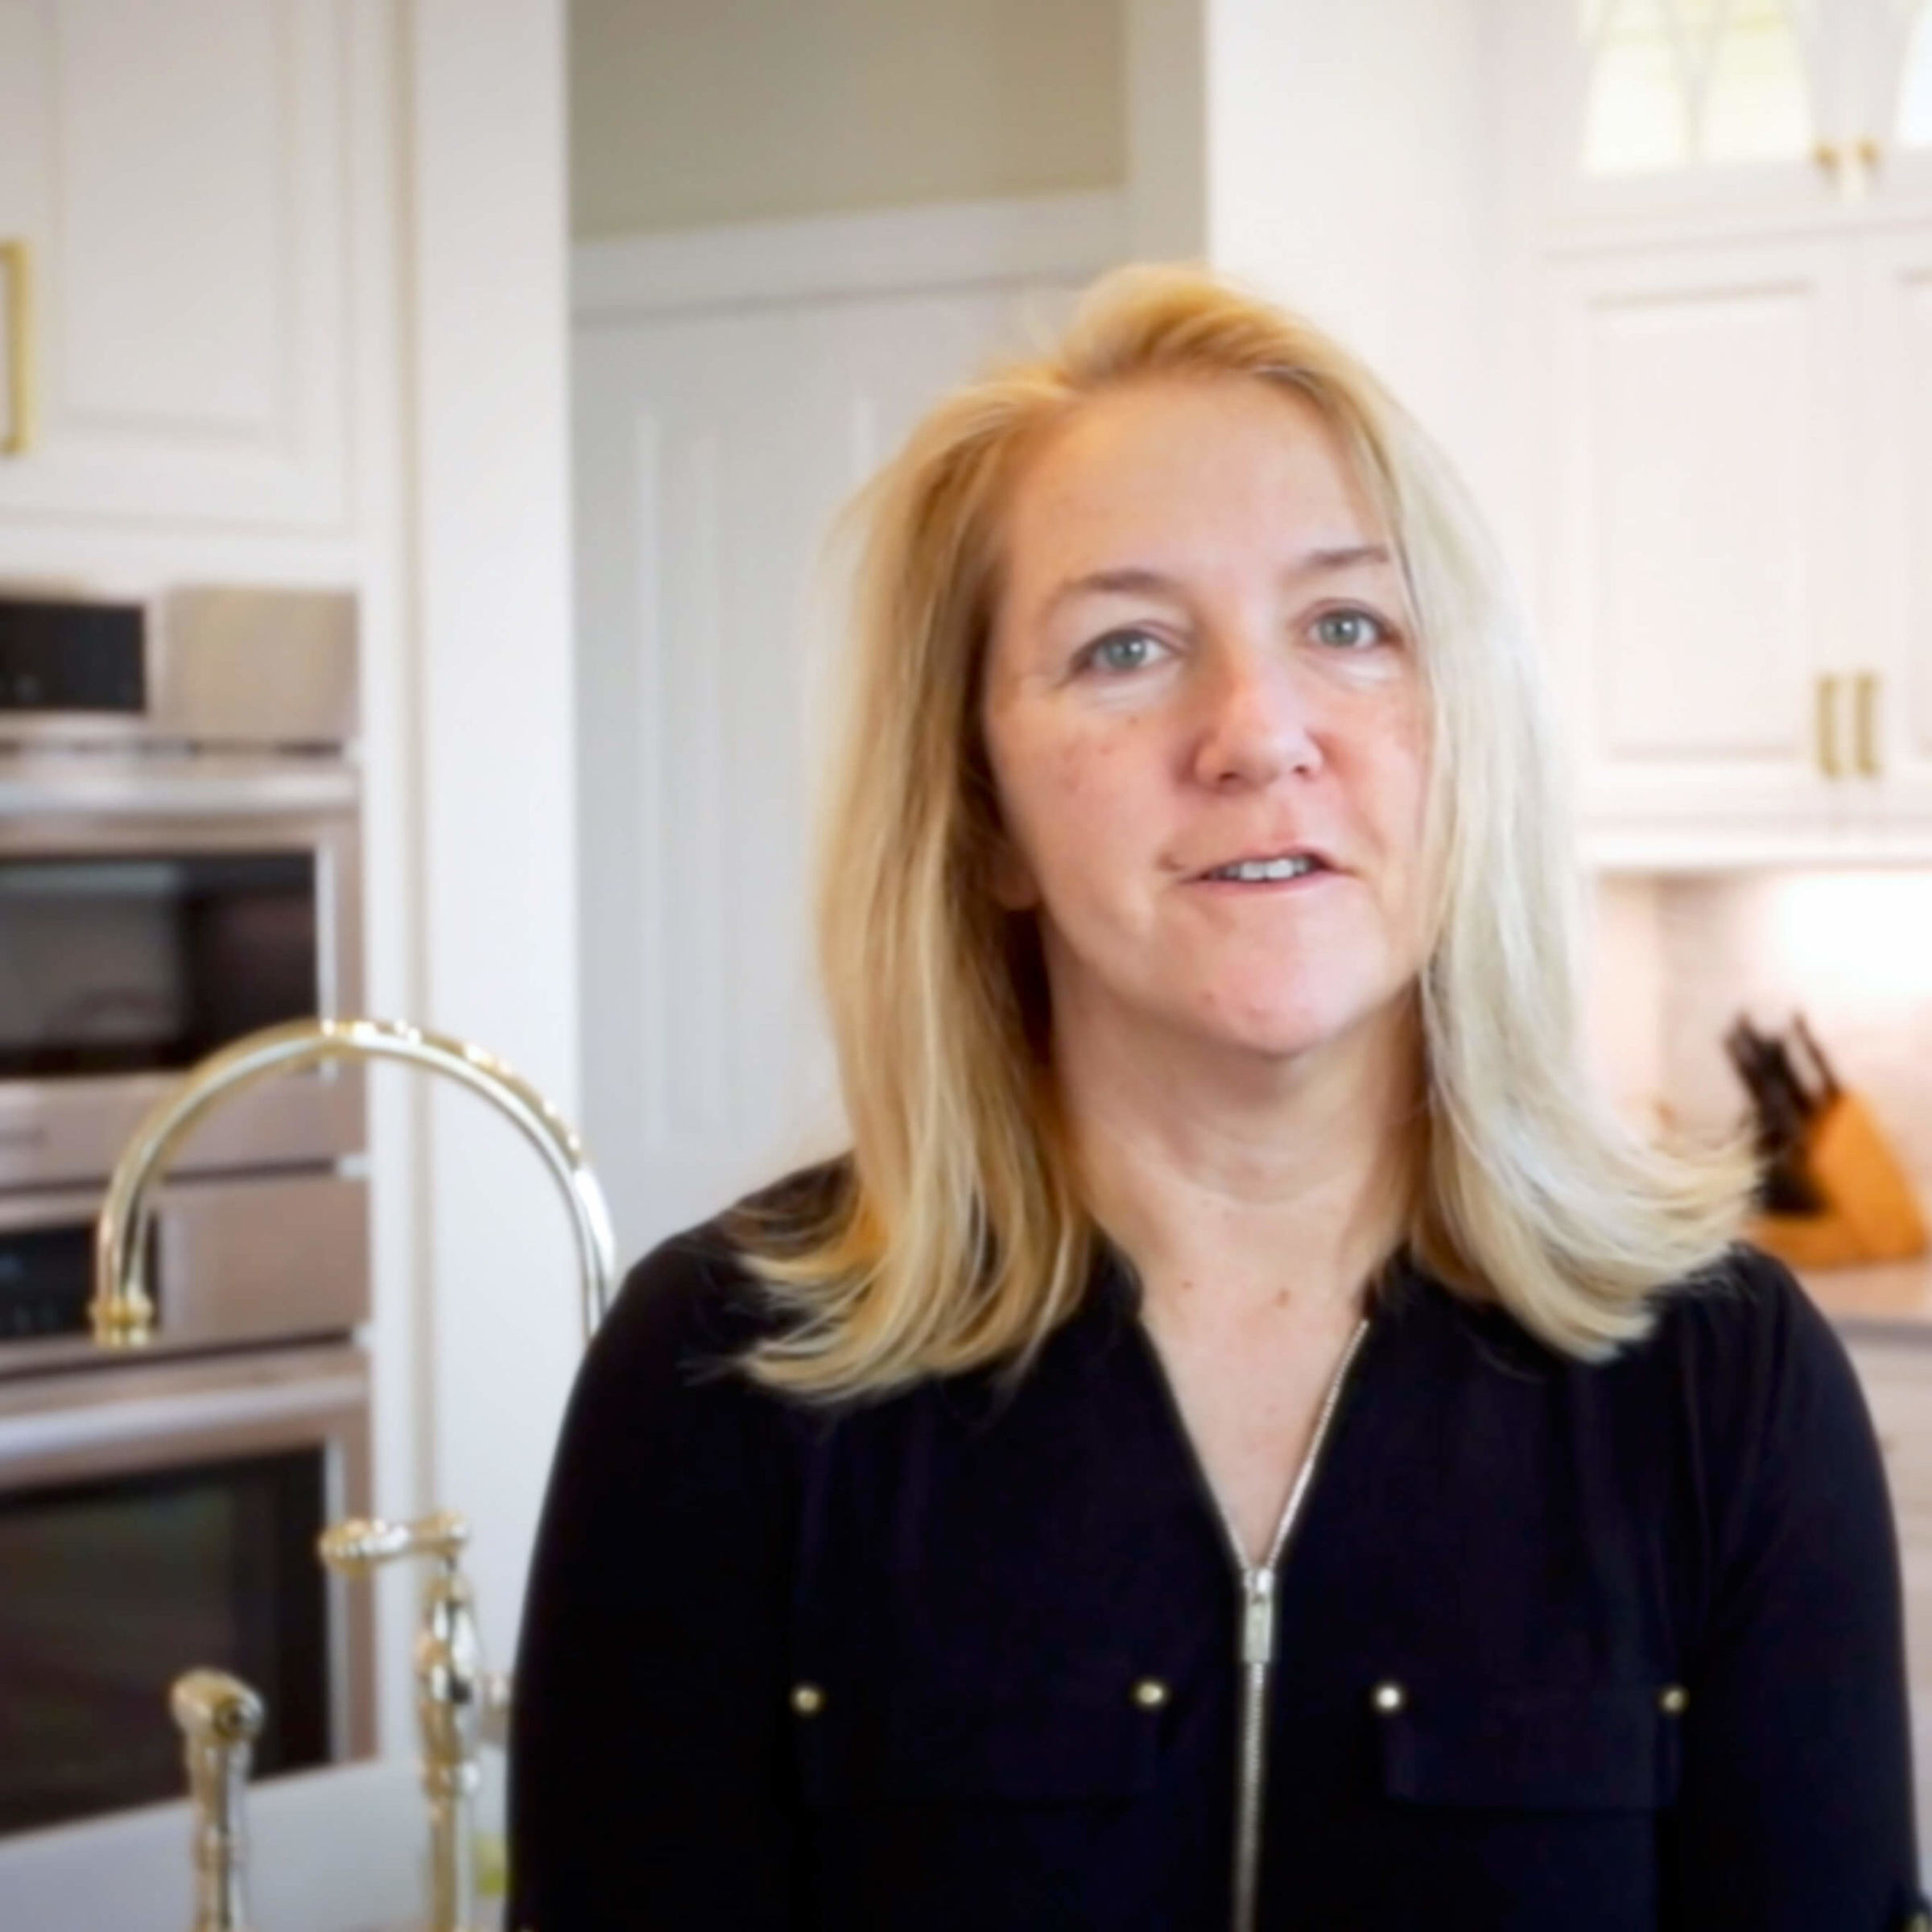 Homeowner Karen Zoccoli shares why she loved working with Viking Kitchens Designer Larry Pelletier to remodel her kitchen and bathroom.